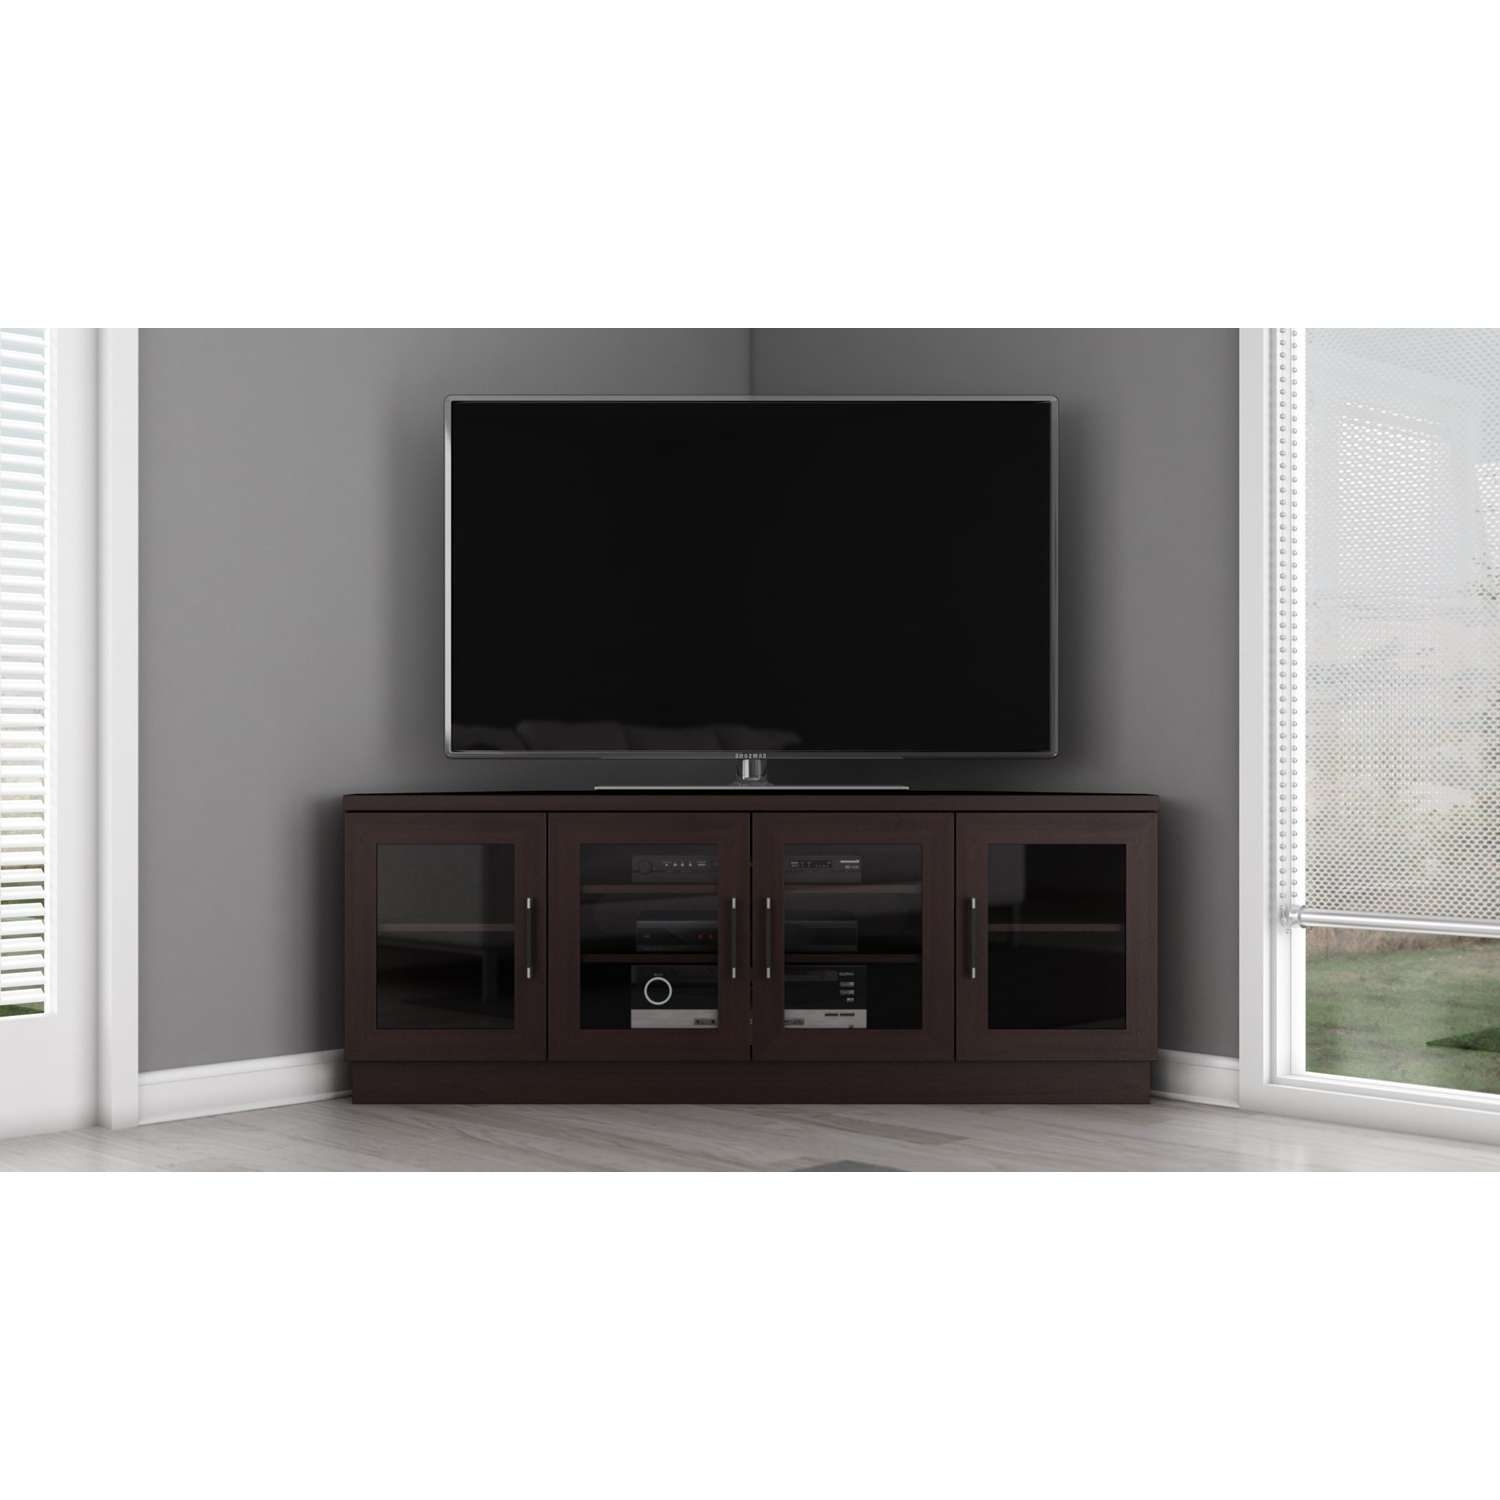 Tv Stand : 39 Fantastic Corner Tv Stand For 60 Inch Tv Image Pertaining To Corner Tv Stands For 60 Inch Tv (View 14 of 15)